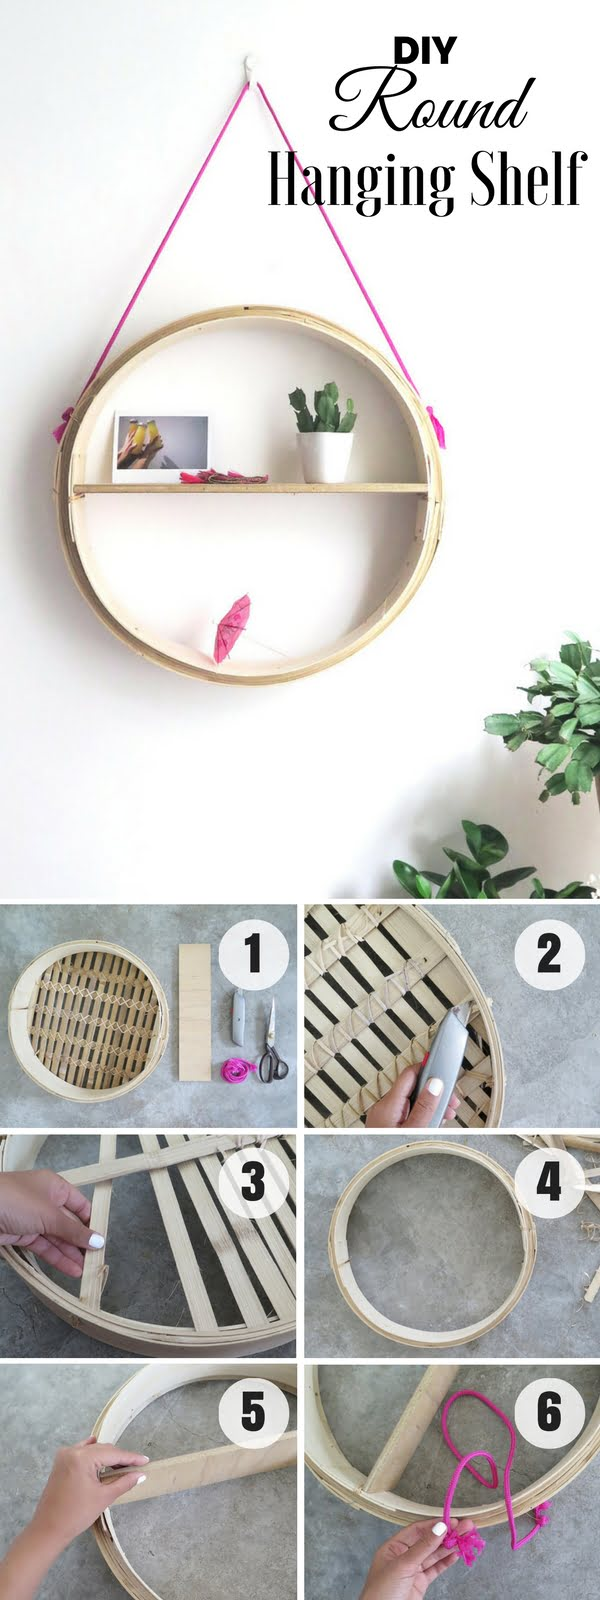 Check out how to make an easy DIY Round Hanging Shelf for bedroom decor